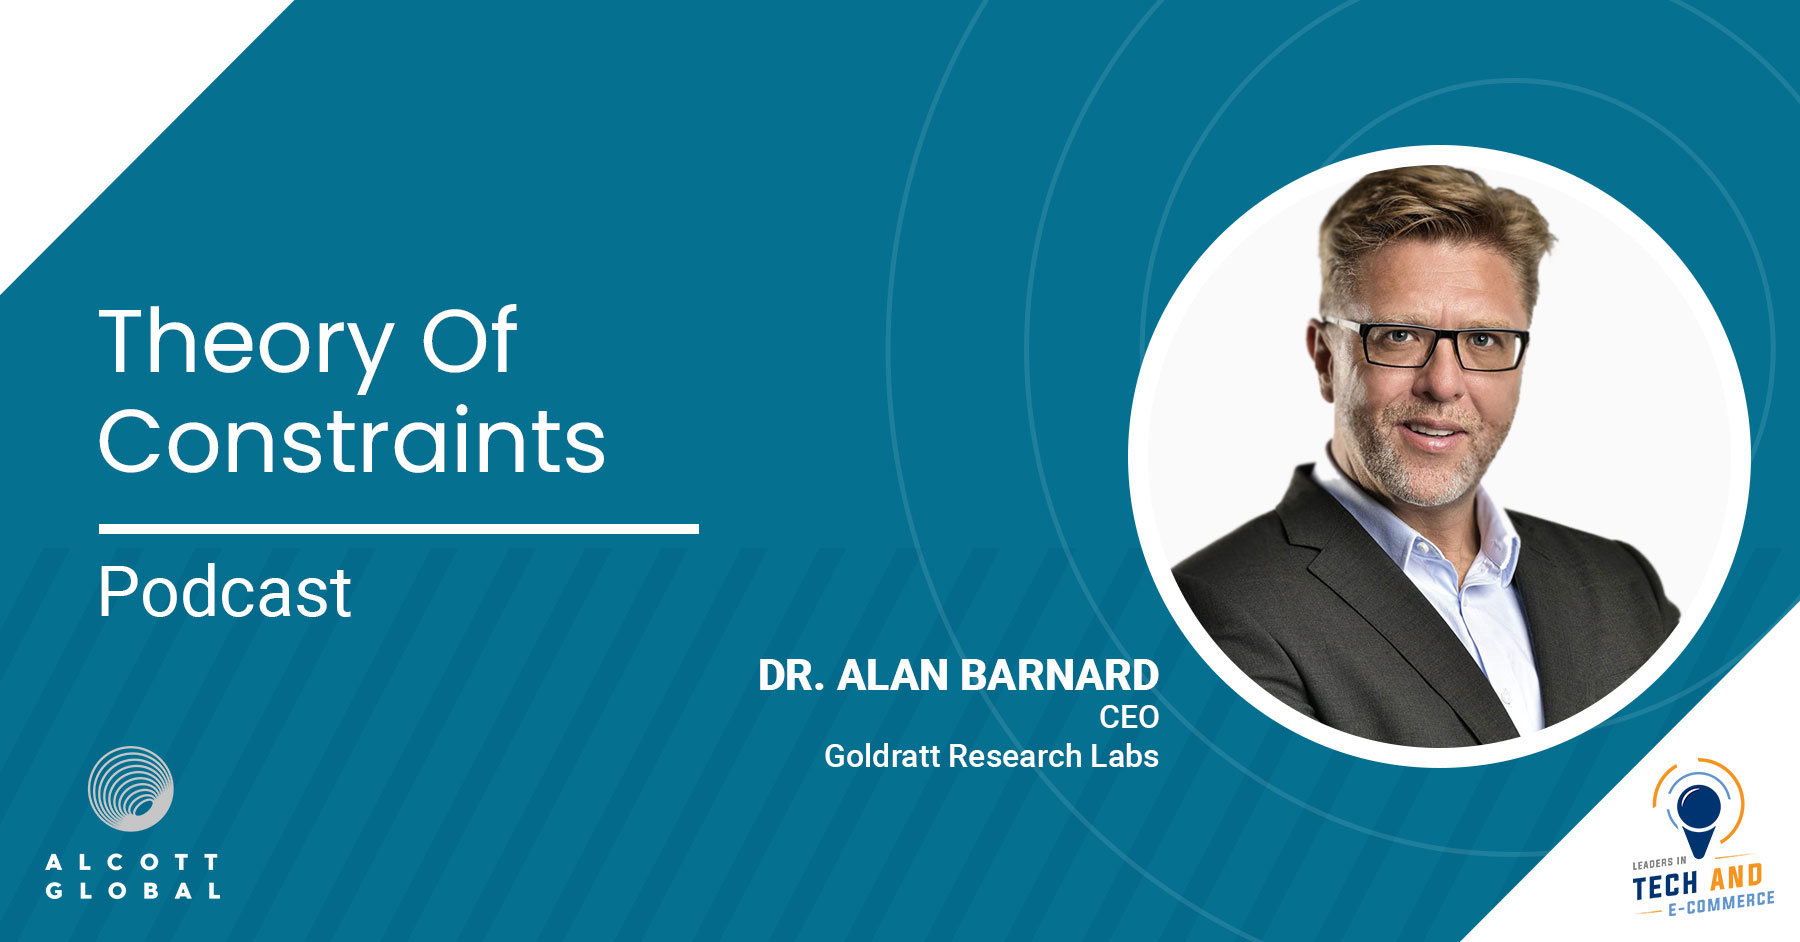 Theory of Constraints with Dr. Alan Barnard CEO of Goldratt Research Labs Featured Image